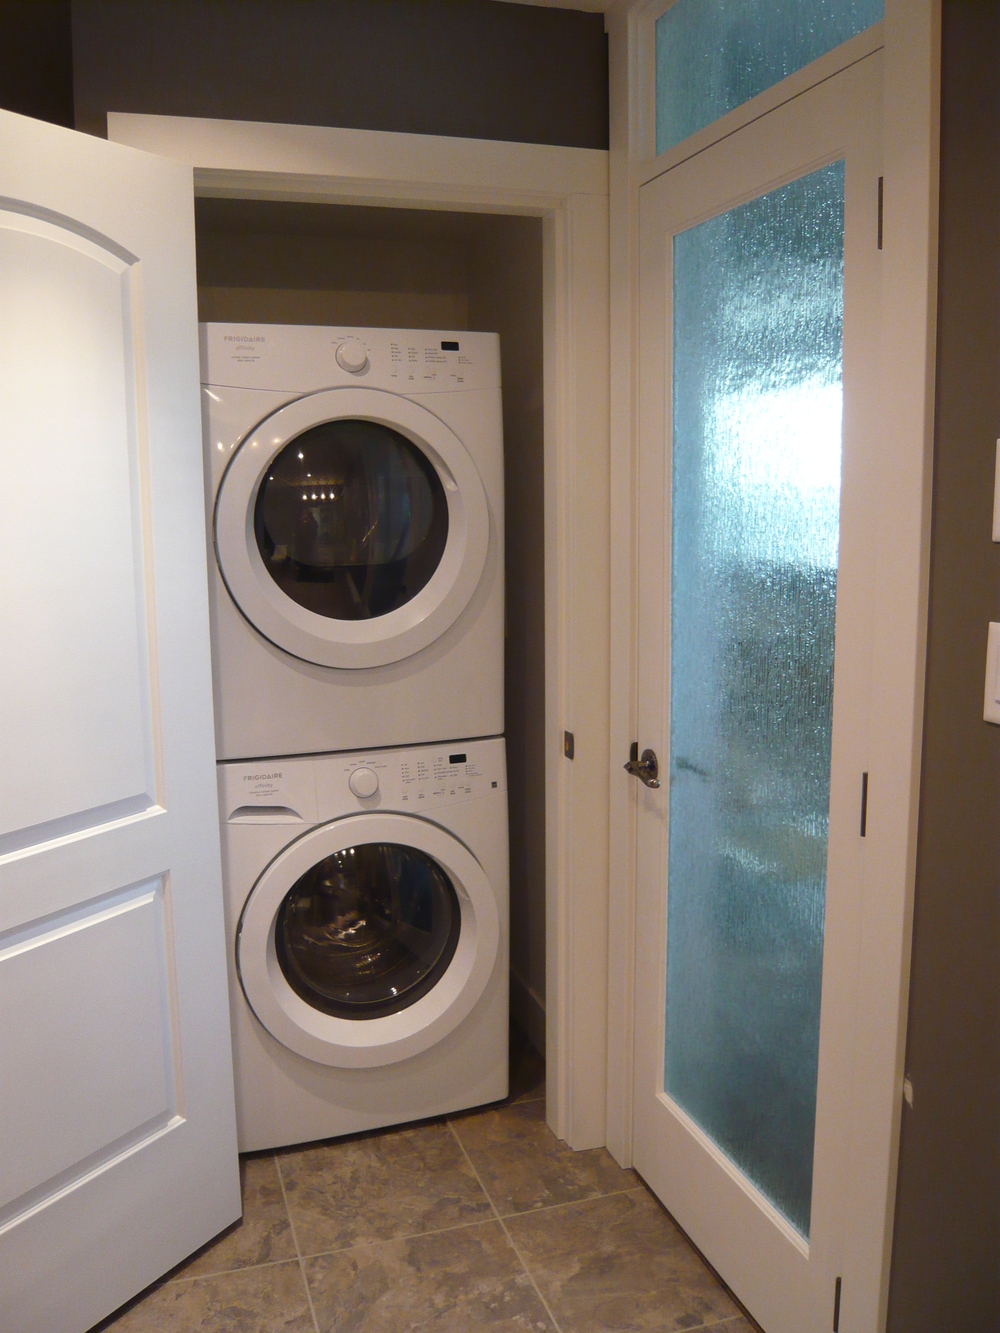 Stackable Washer/Dryer in Bathroom